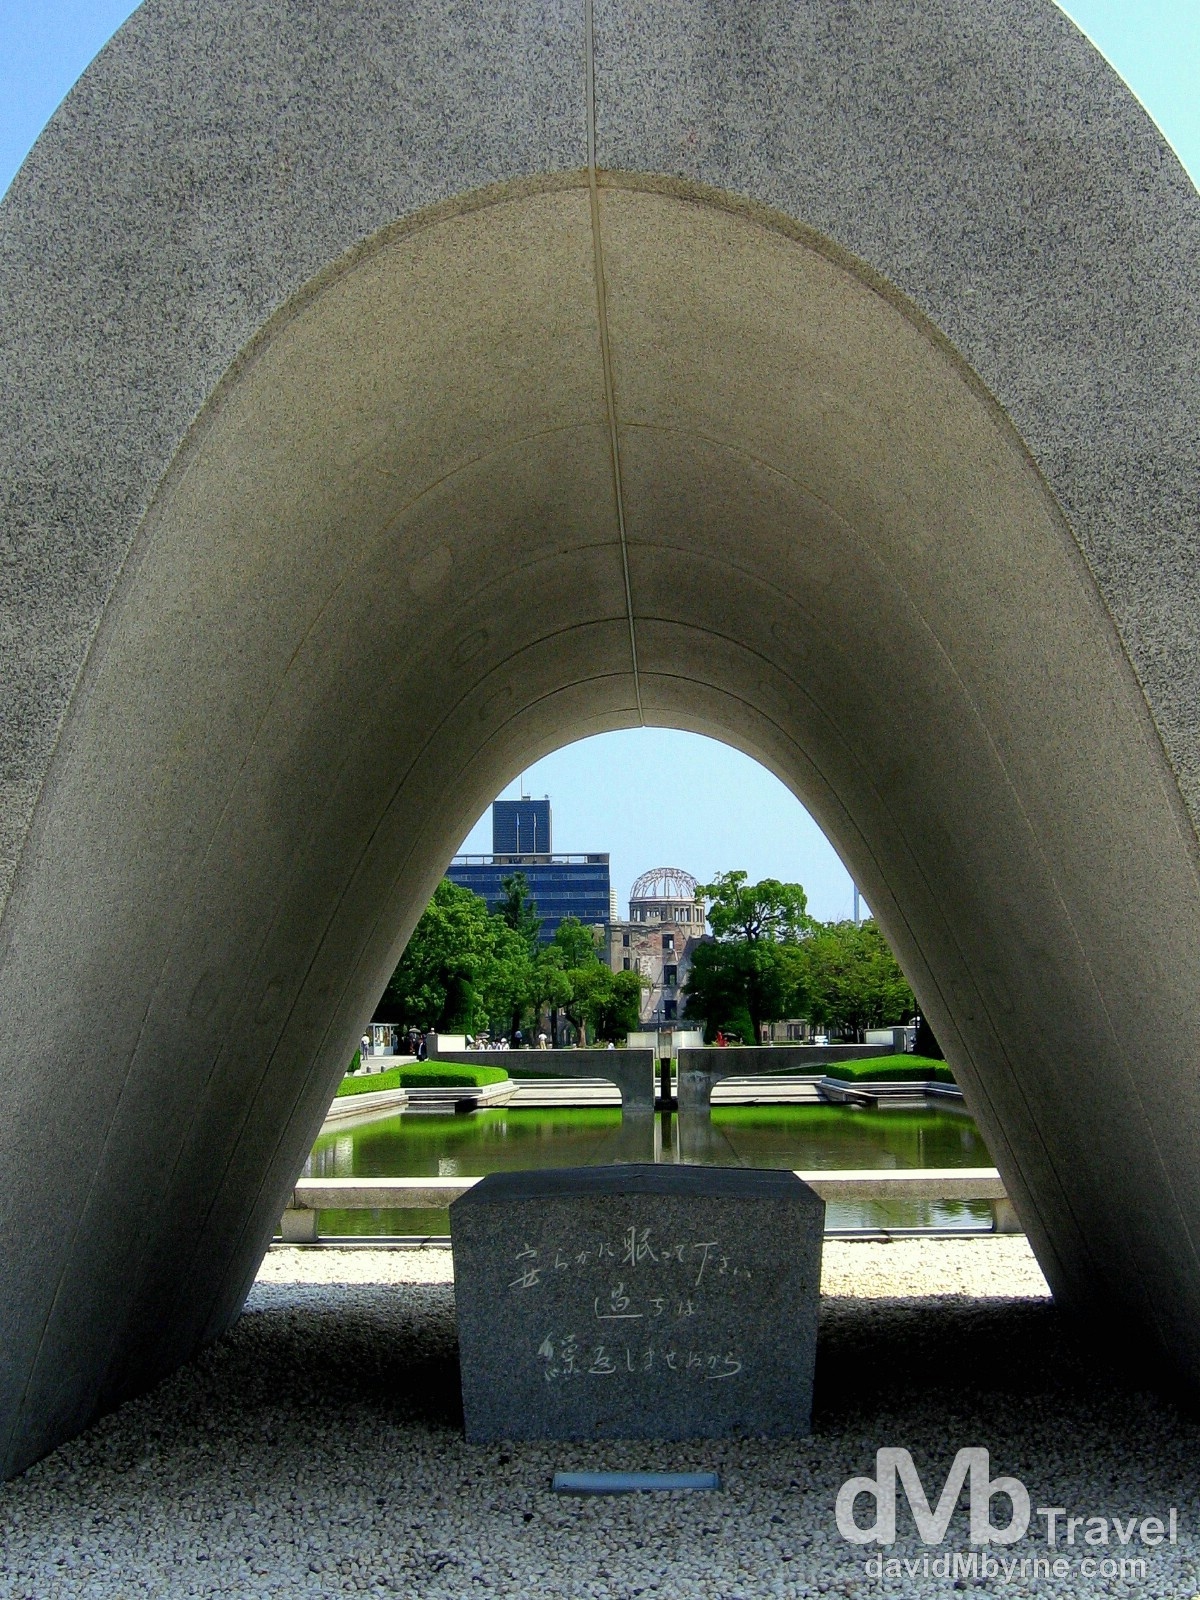 The distant A-bomb Dome as seen from under the arch of the Memorial Cenotaph in Hiroshima Peace Memorial Park, Hiroshima, Honshu, Japan. July 22nd, 2005.